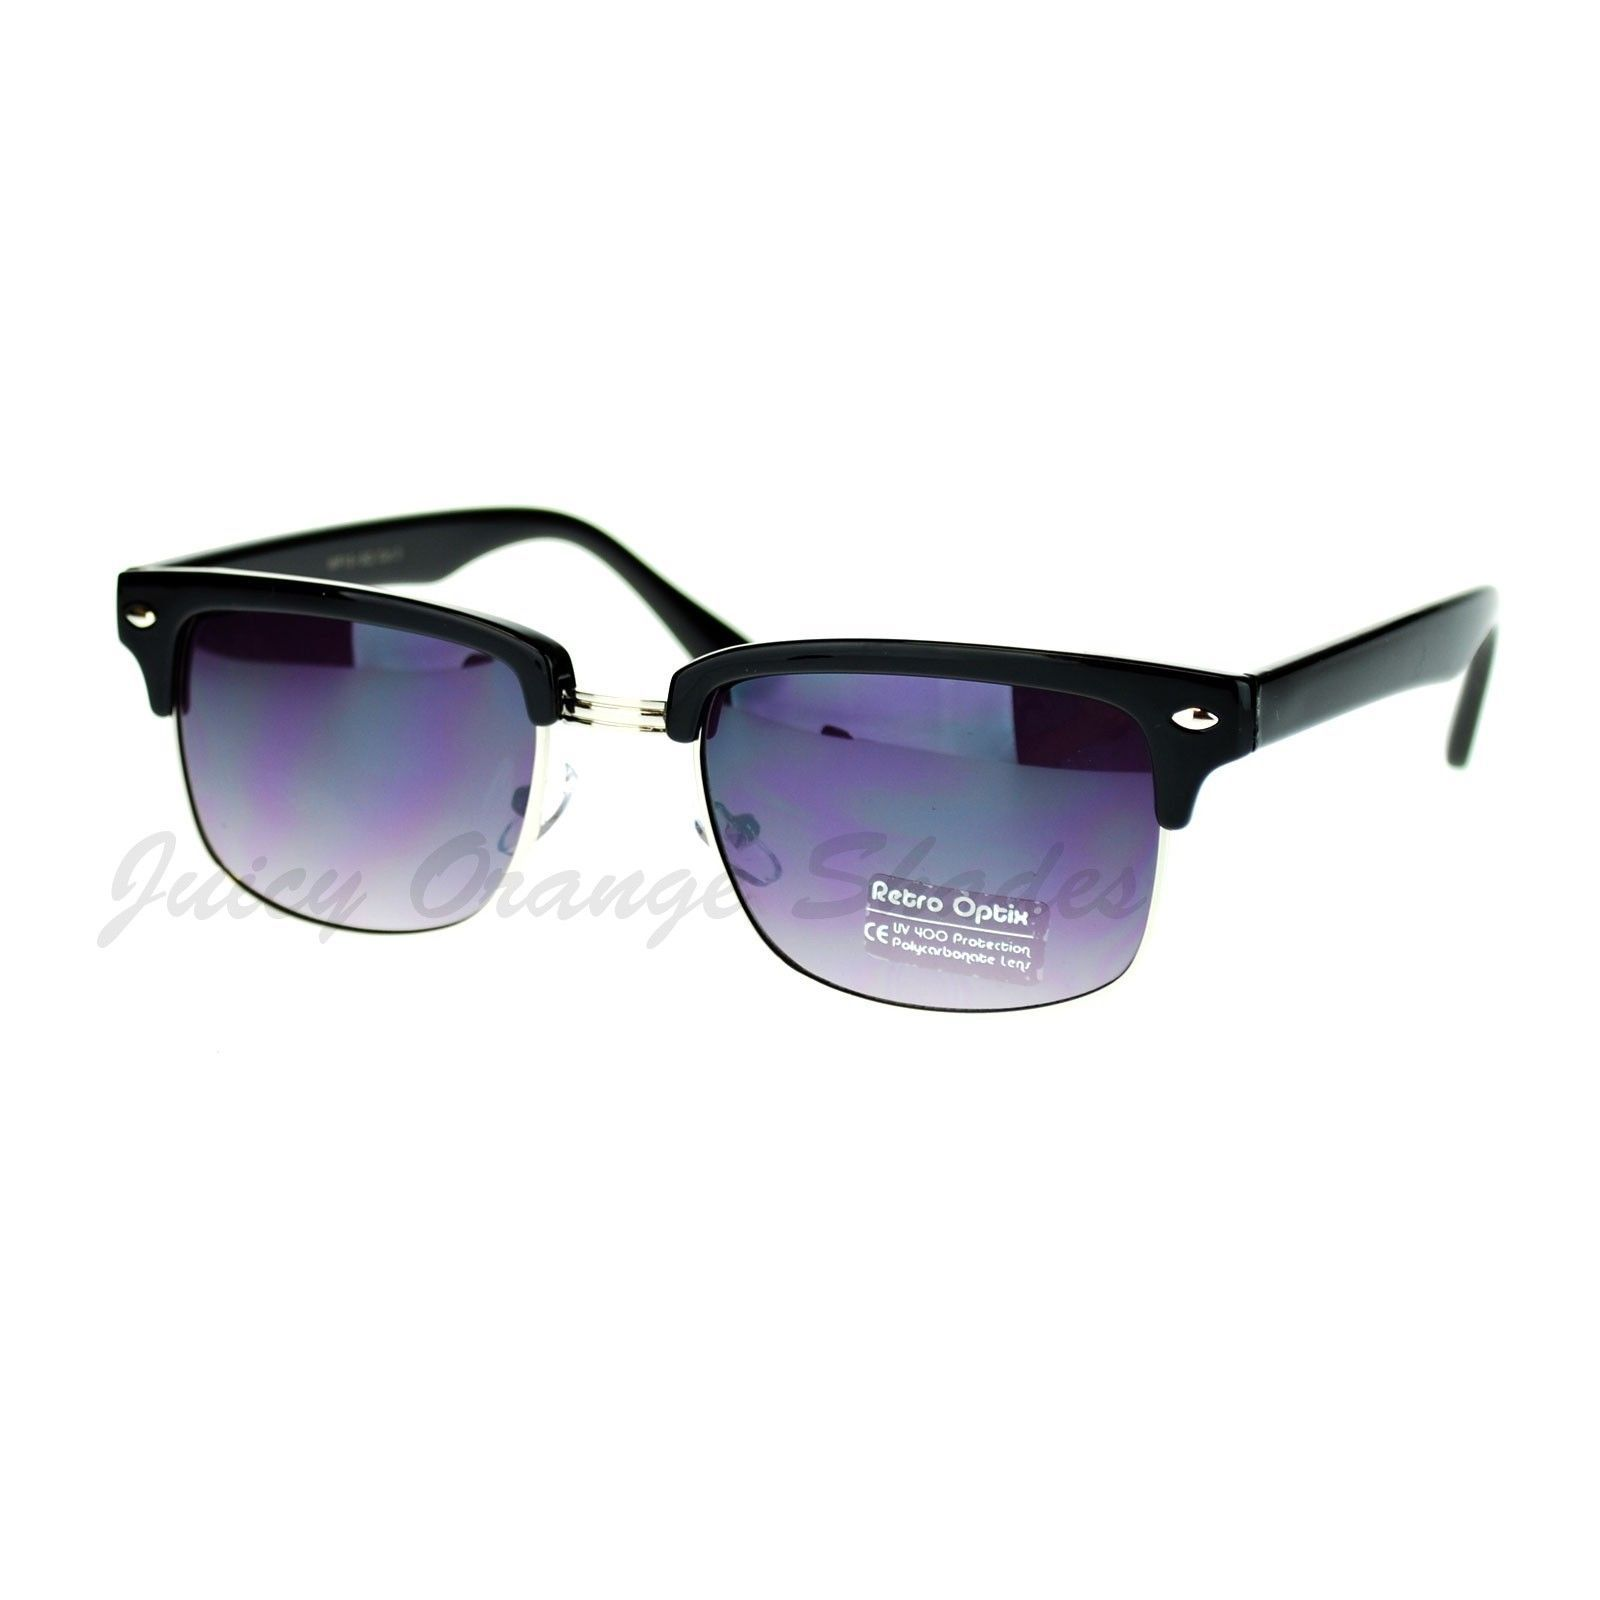 36312a26de7f Unisex Designer Fashion Sunglasses Short and 50 similar items. 57